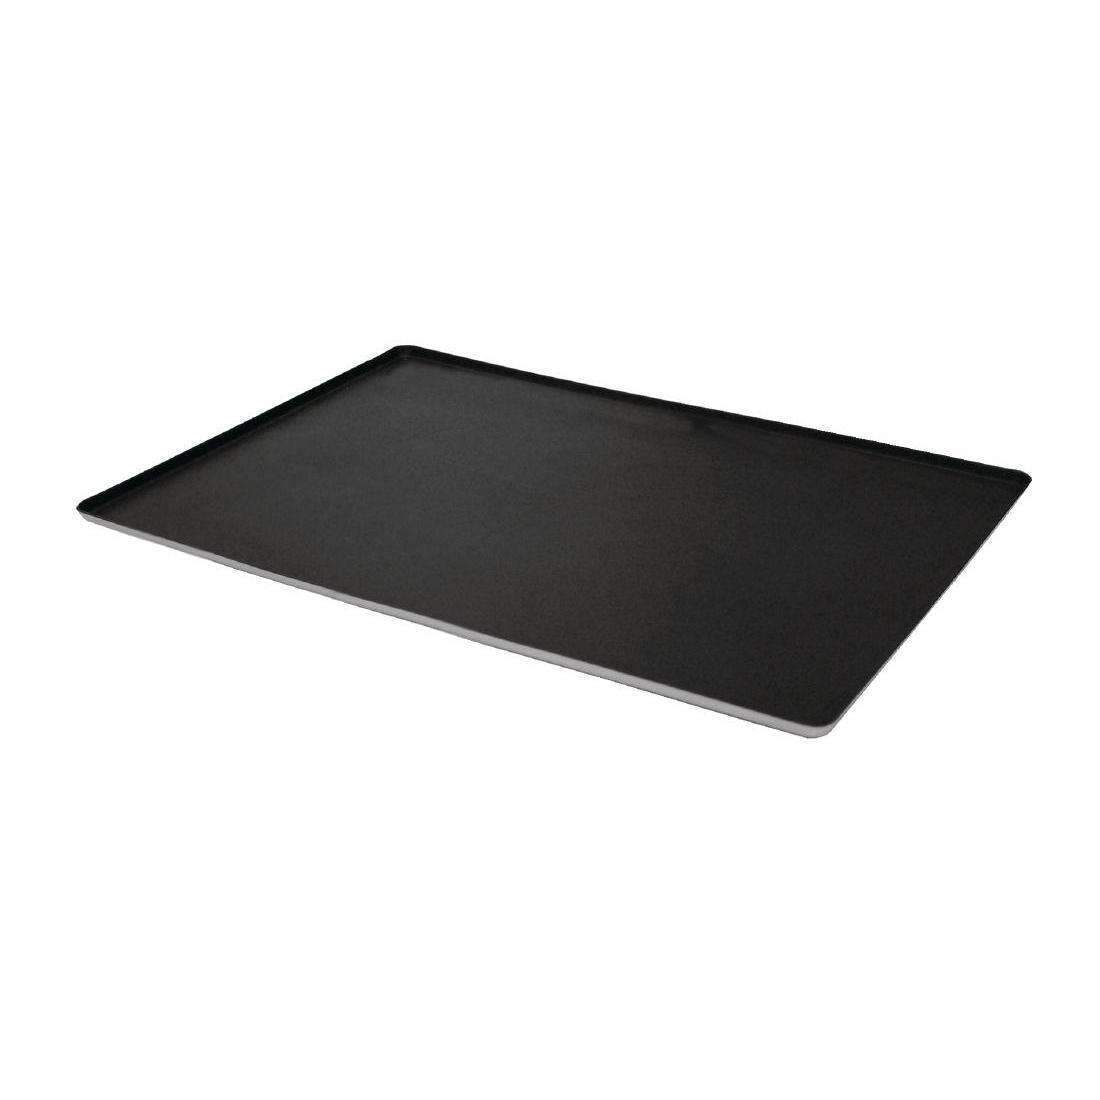 Vogue Non Stick Patisserie Tray - Each - K339